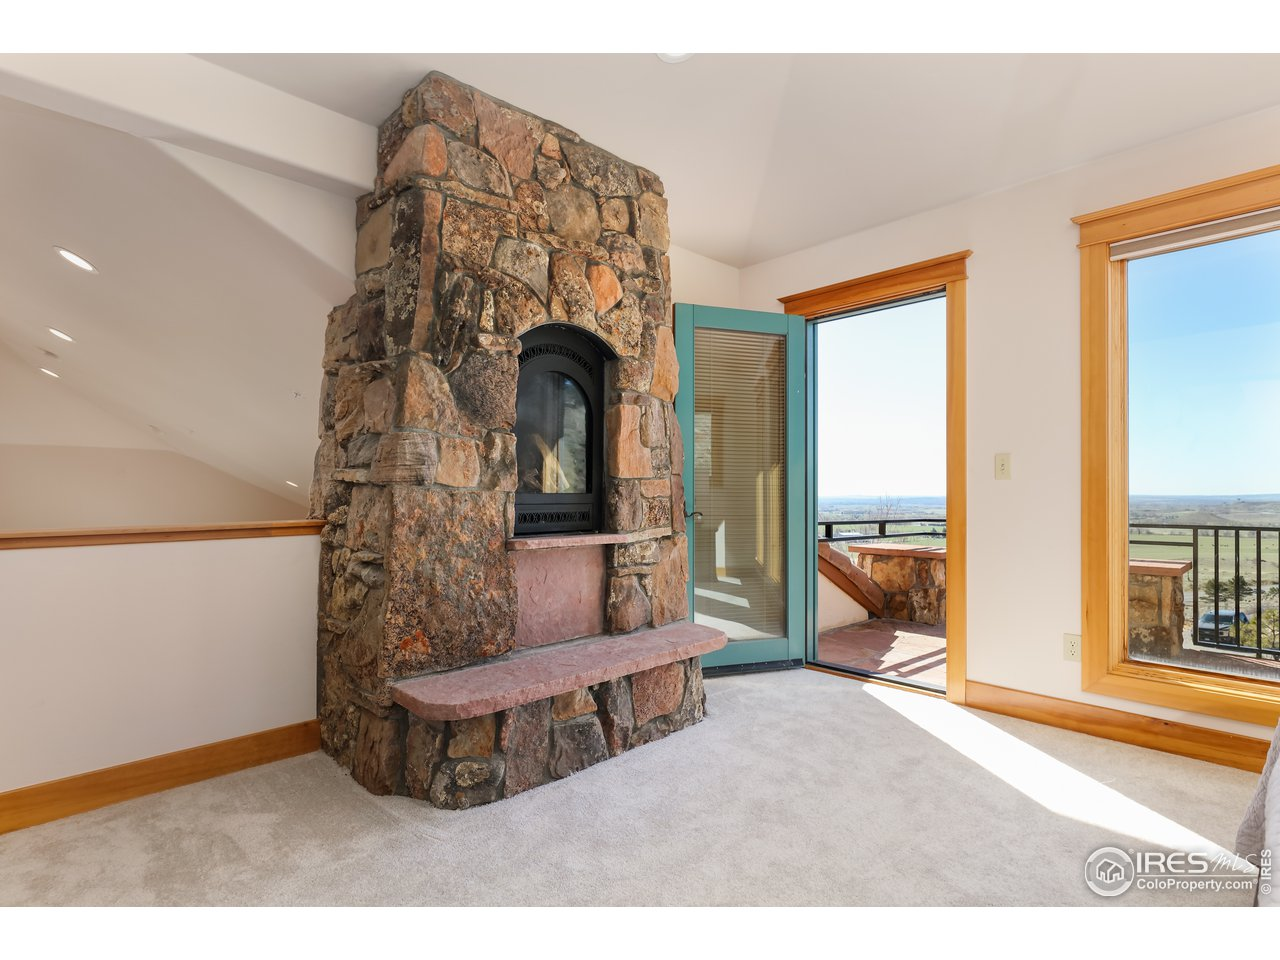 Primary bedroom fireplace and deck access